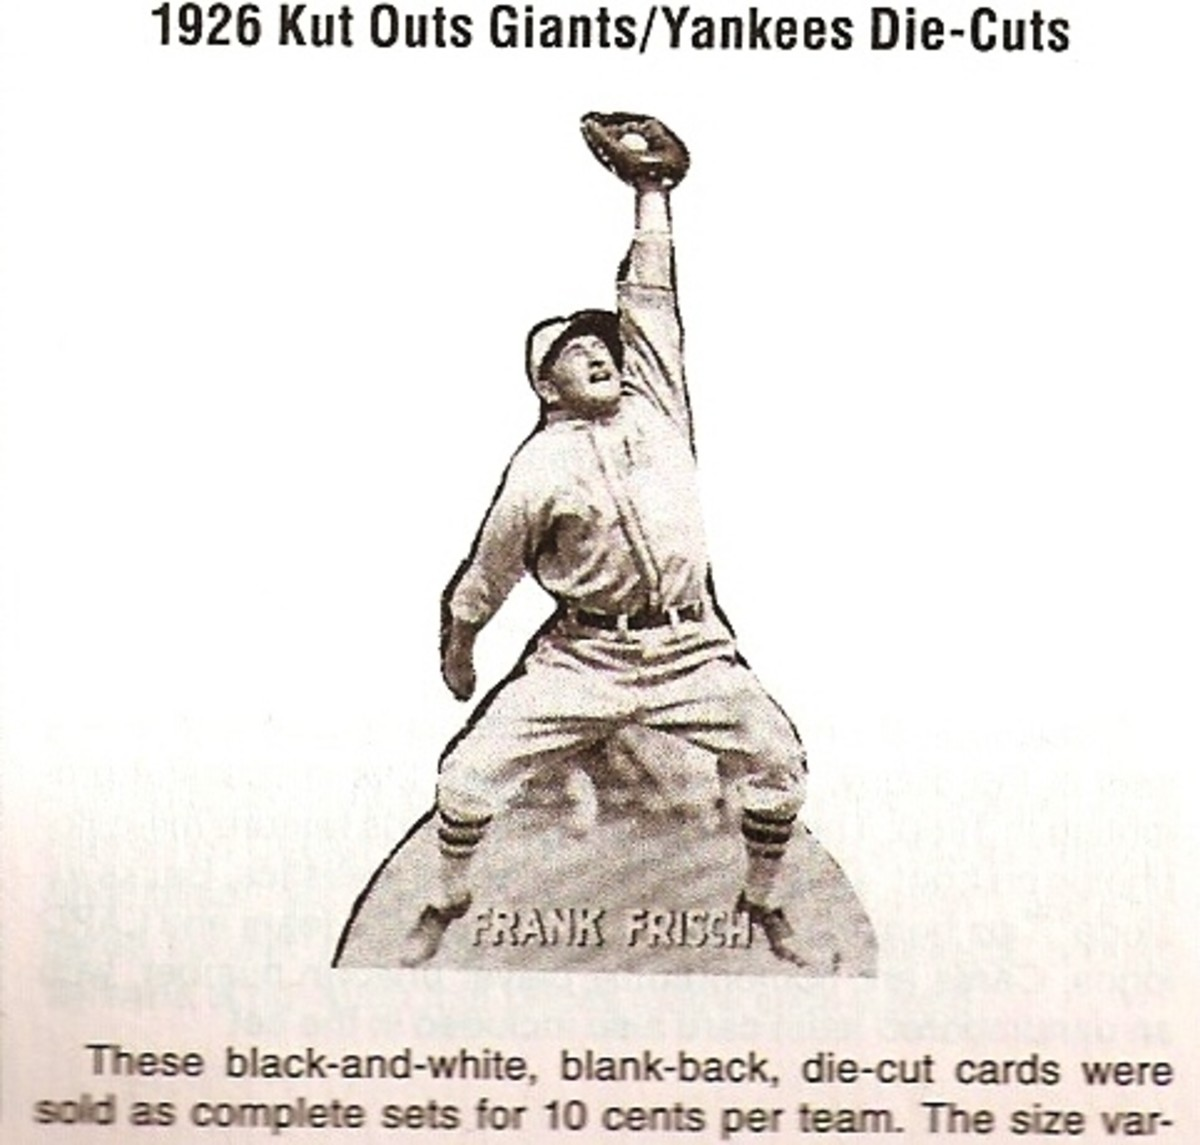 The 1926 Kut Outs were a pretty good investment, at 10 cents per team, no matter how you analyze the results.